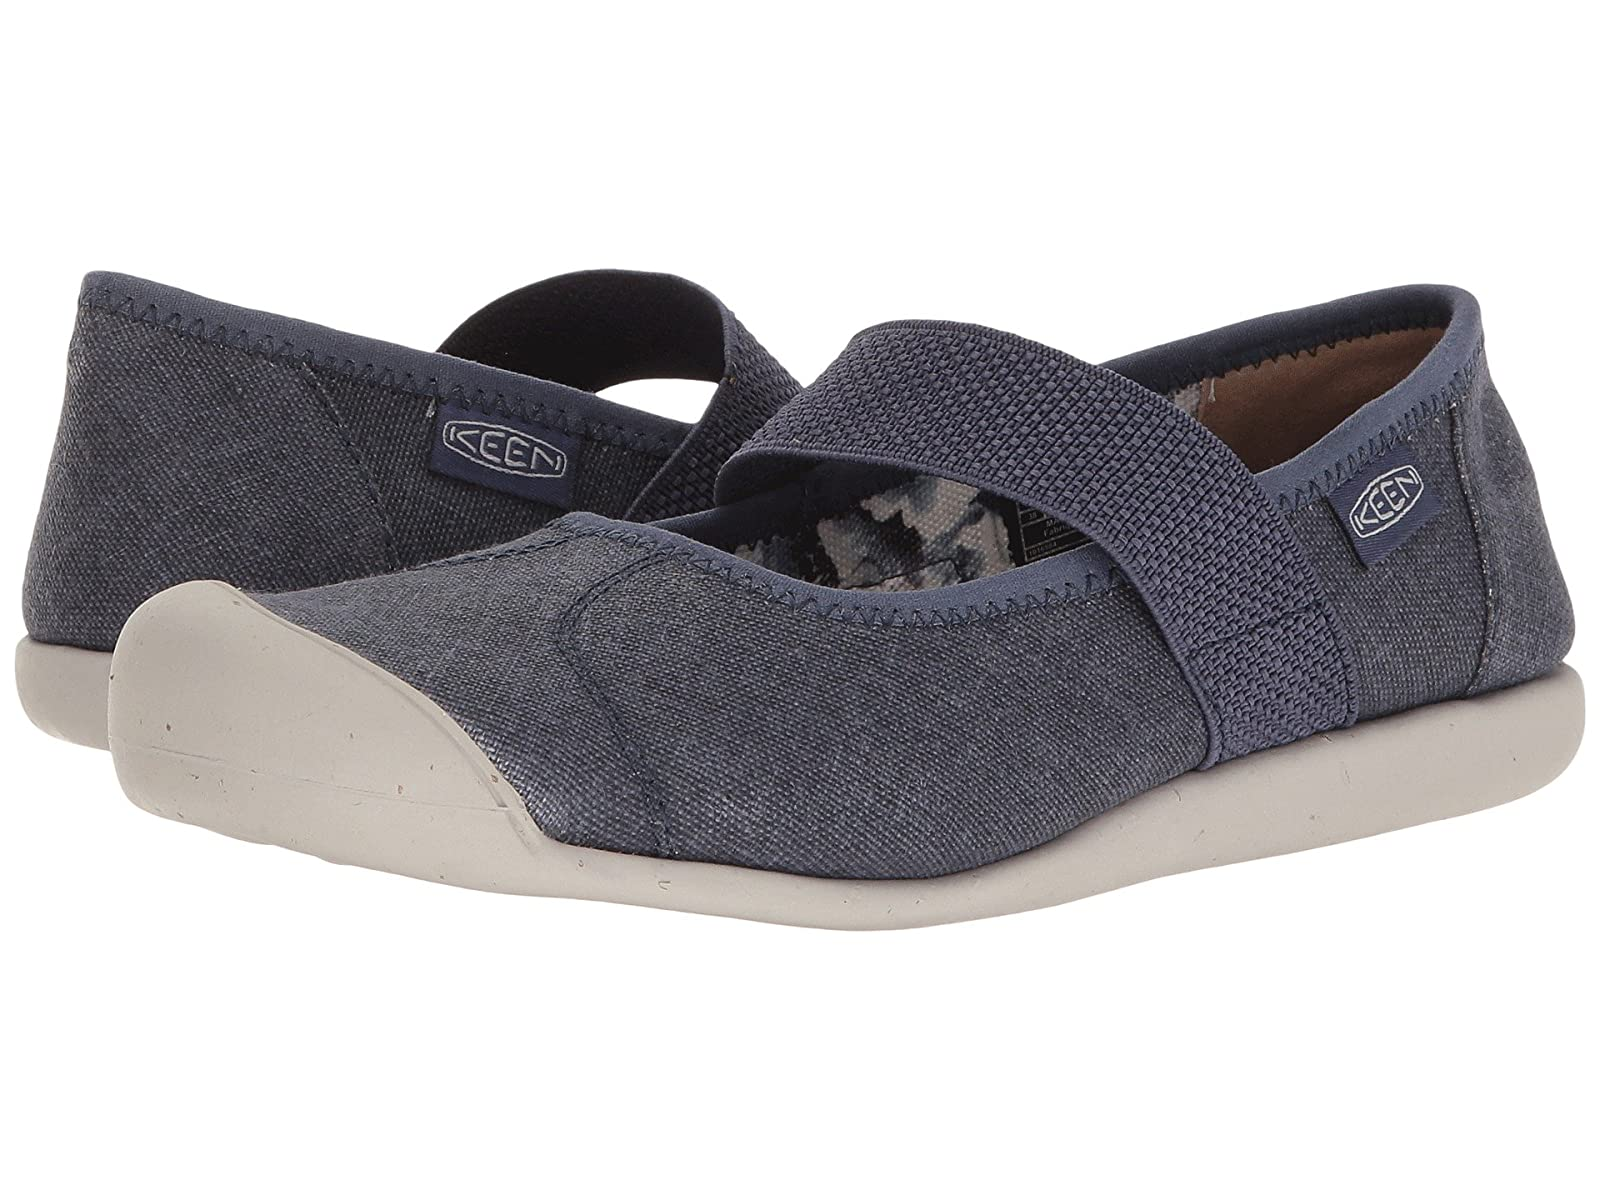 Keen Sienna MJ CanvasAtmospheric grades have affordable shoes